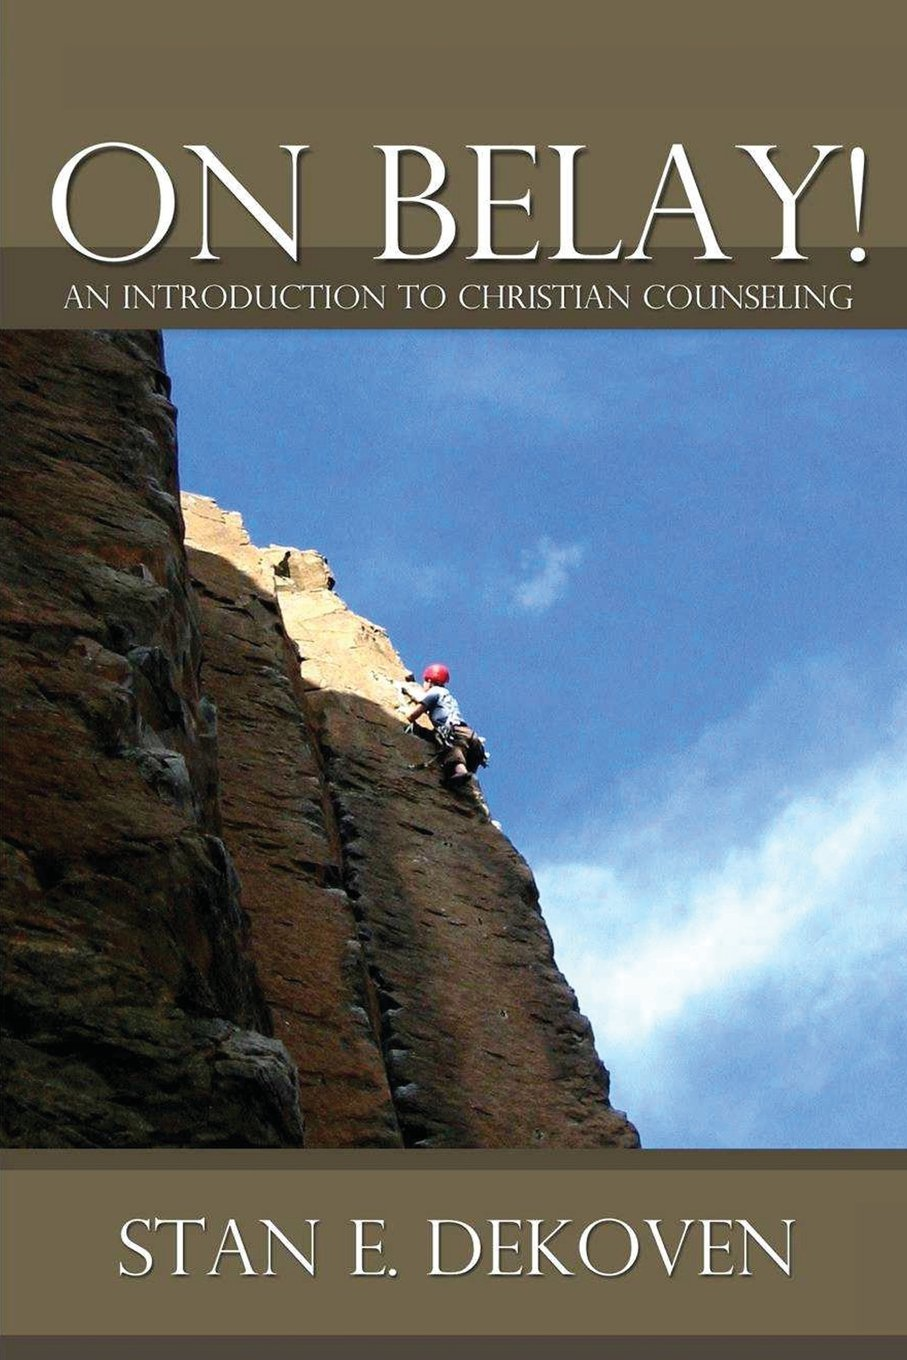 On Belay! an Introduction to Christian Counseling PDF